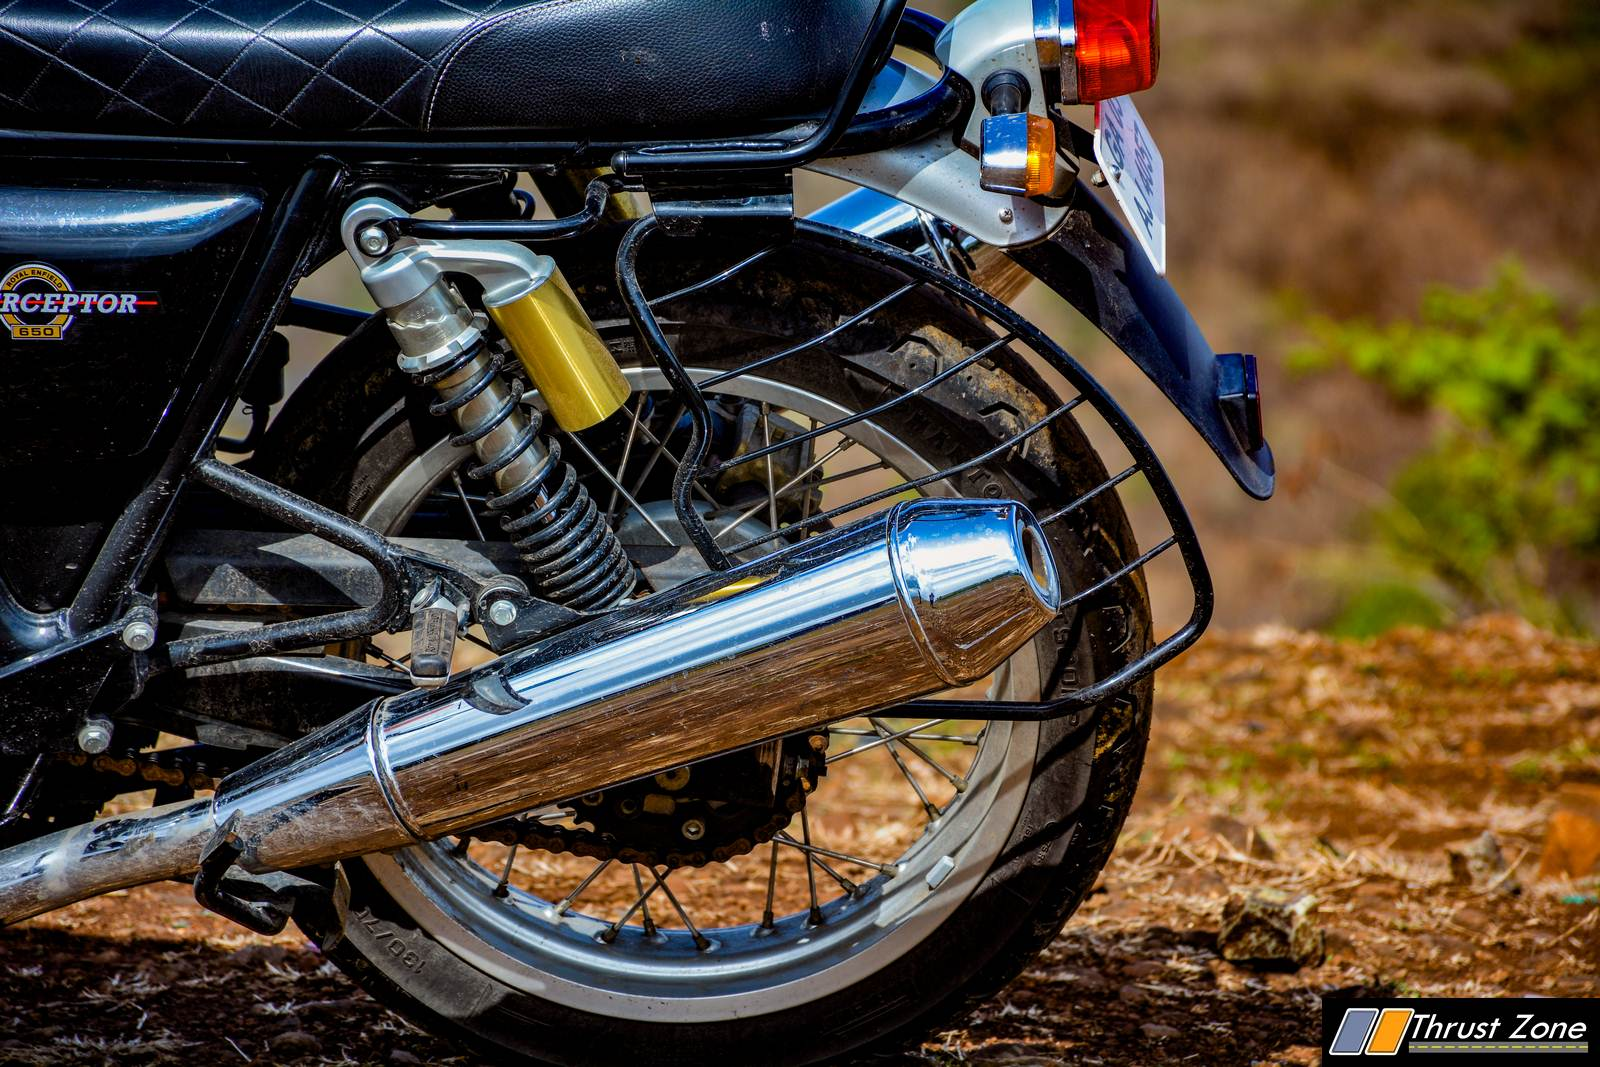 2019-Royal-Enfield-Interceptor-650-review-7